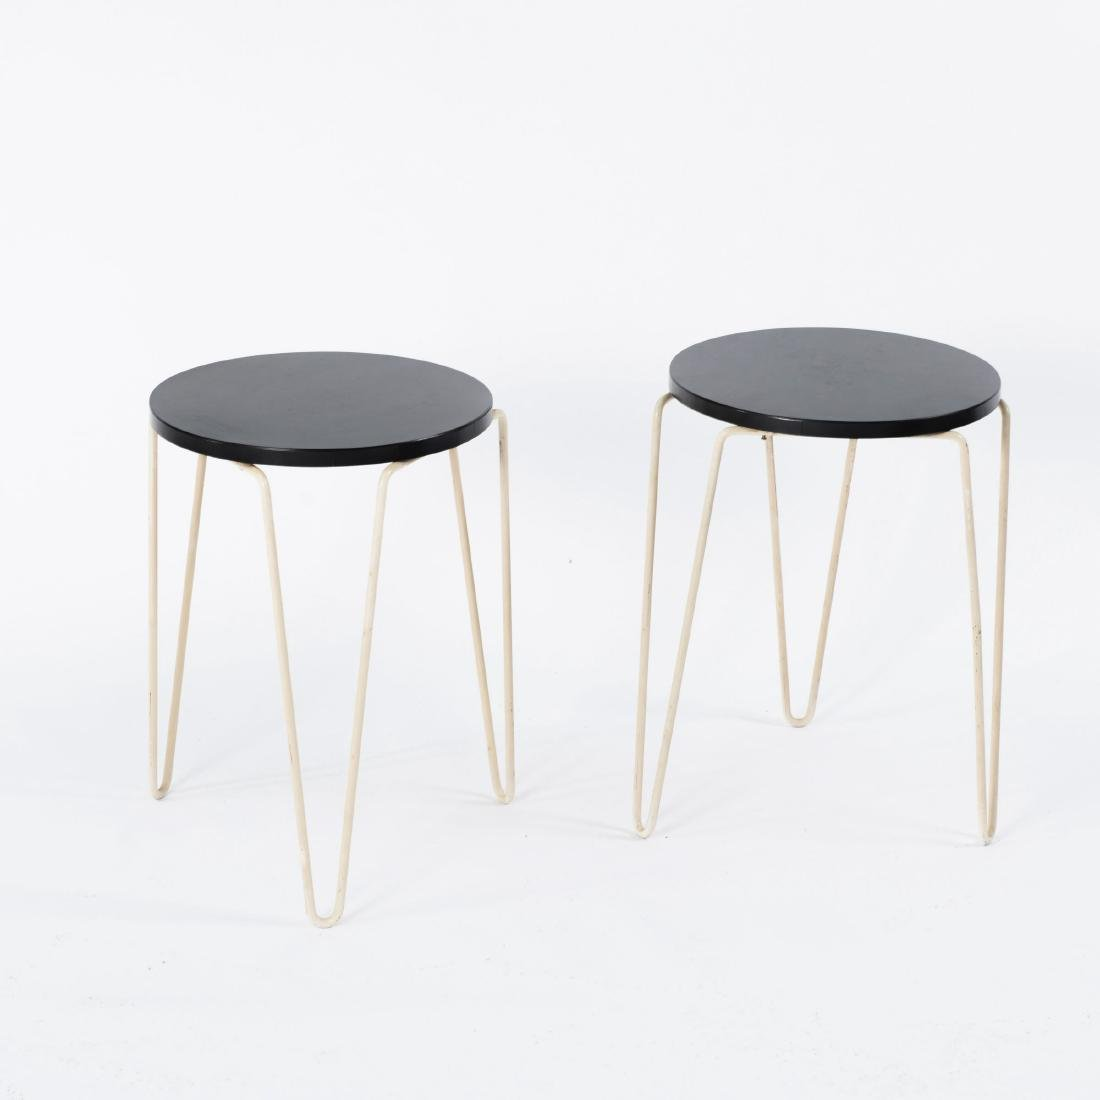 Two stools, c1950 - 2